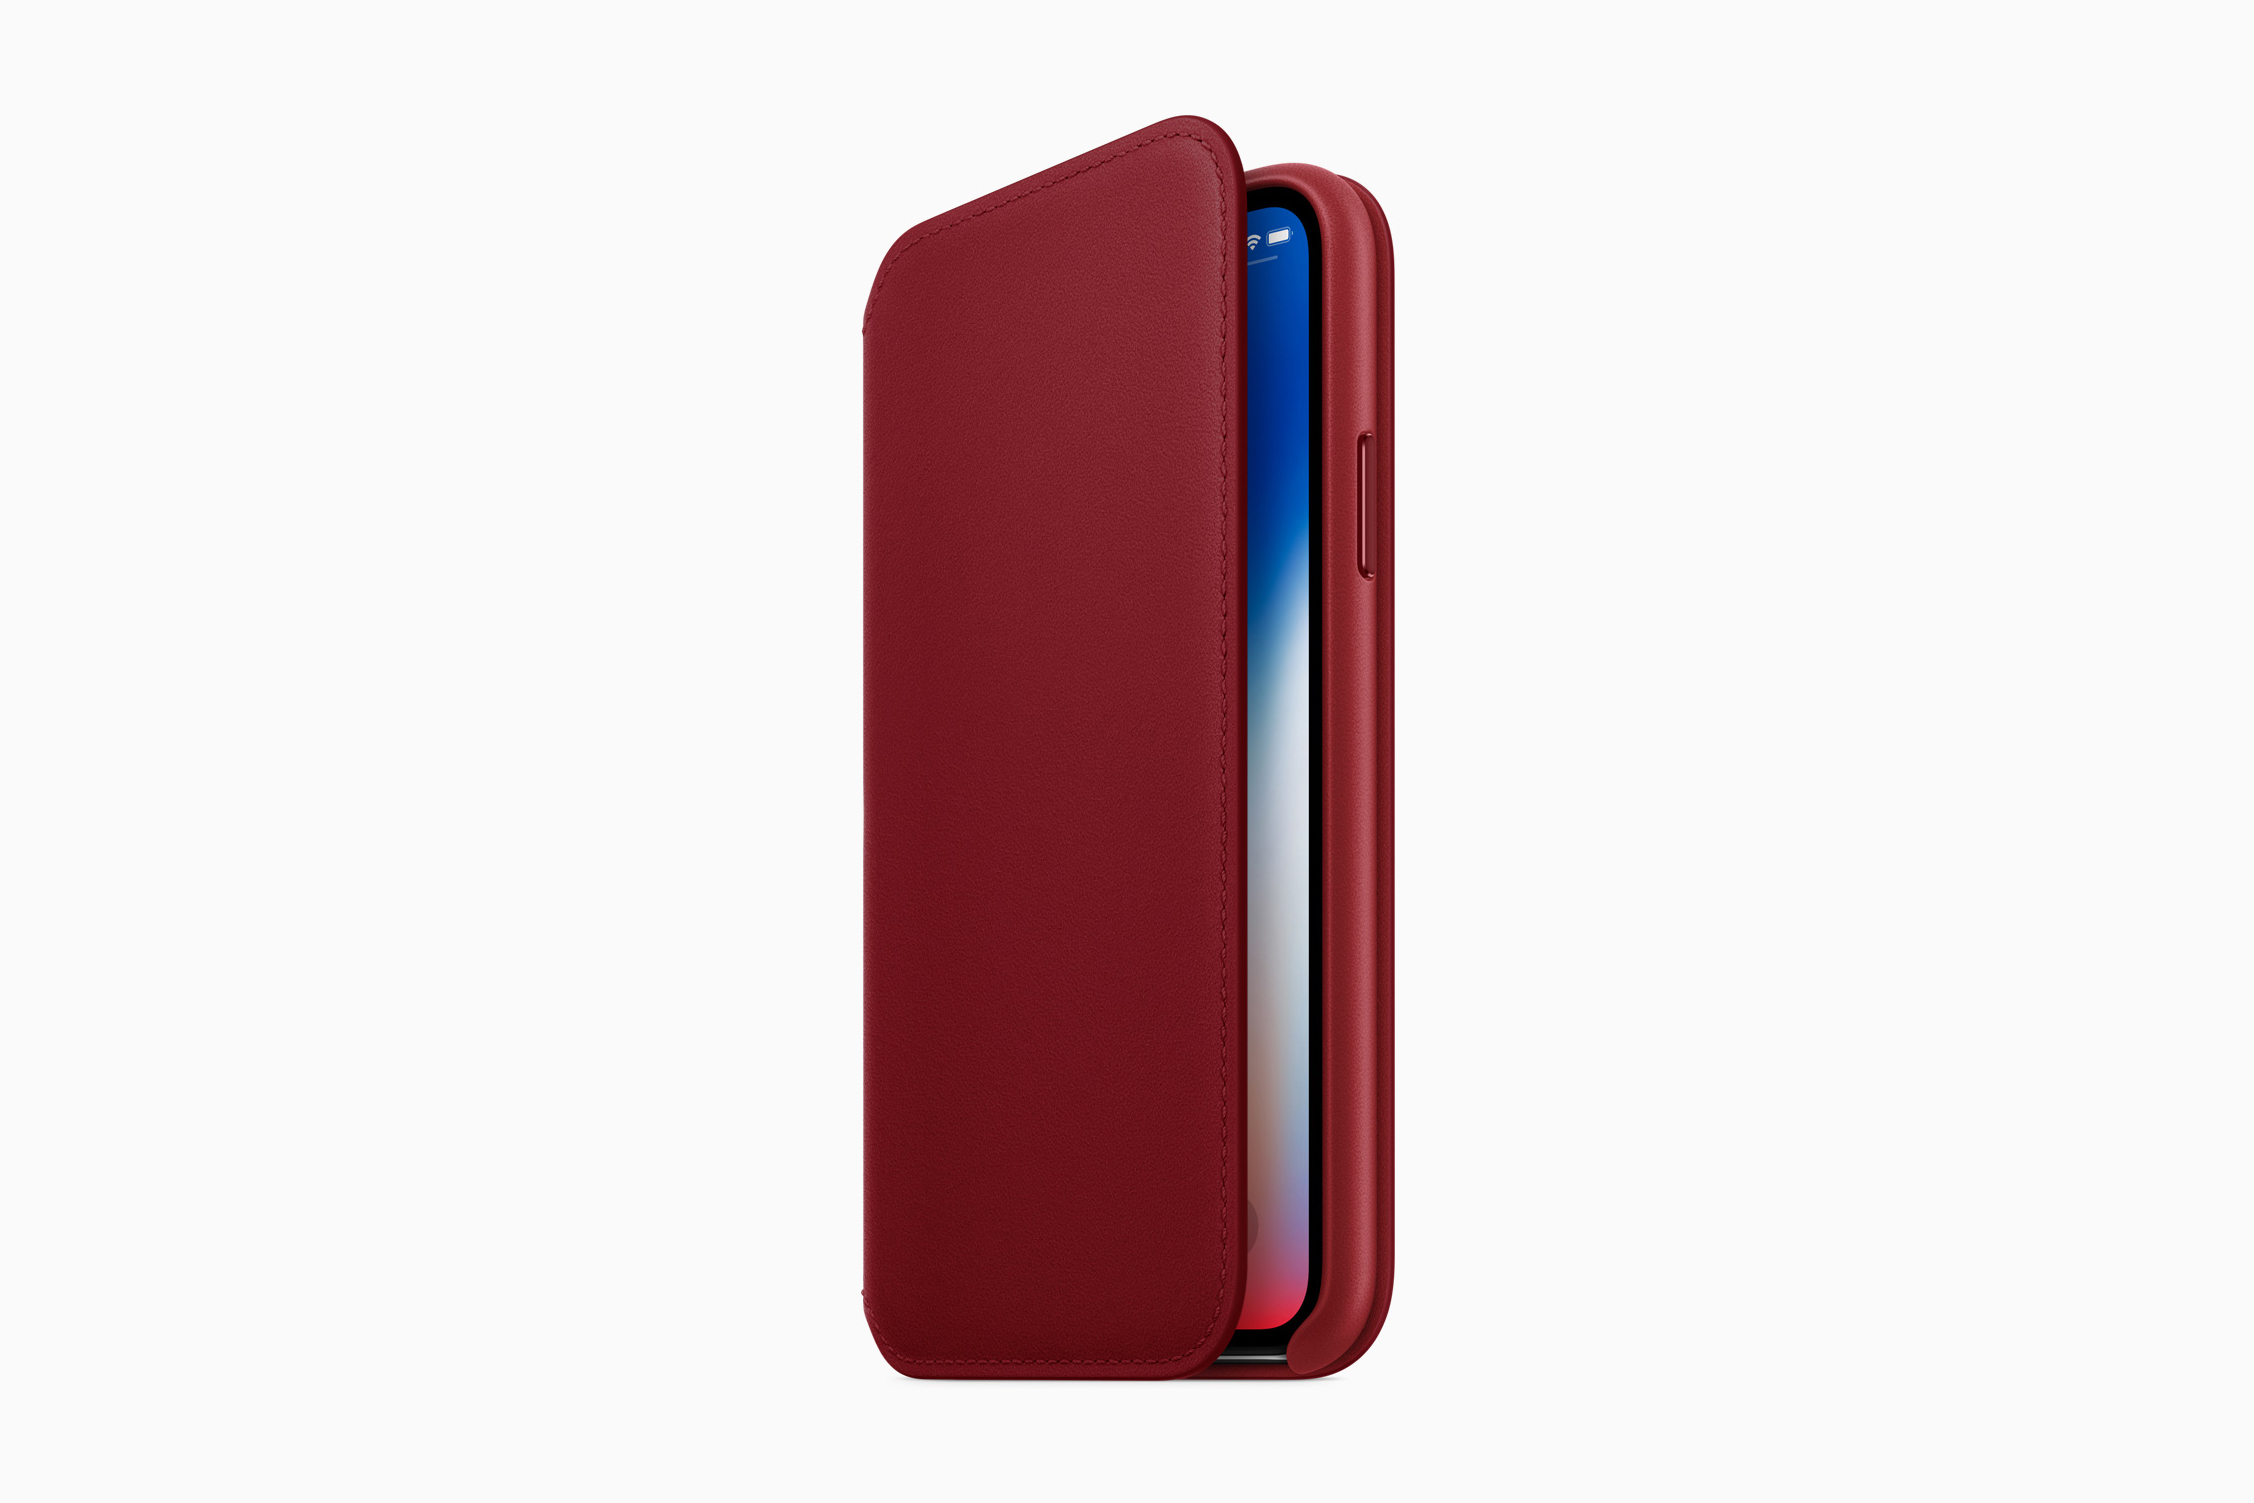 2ecf6968228 The iPhone X gets a RED leather folio